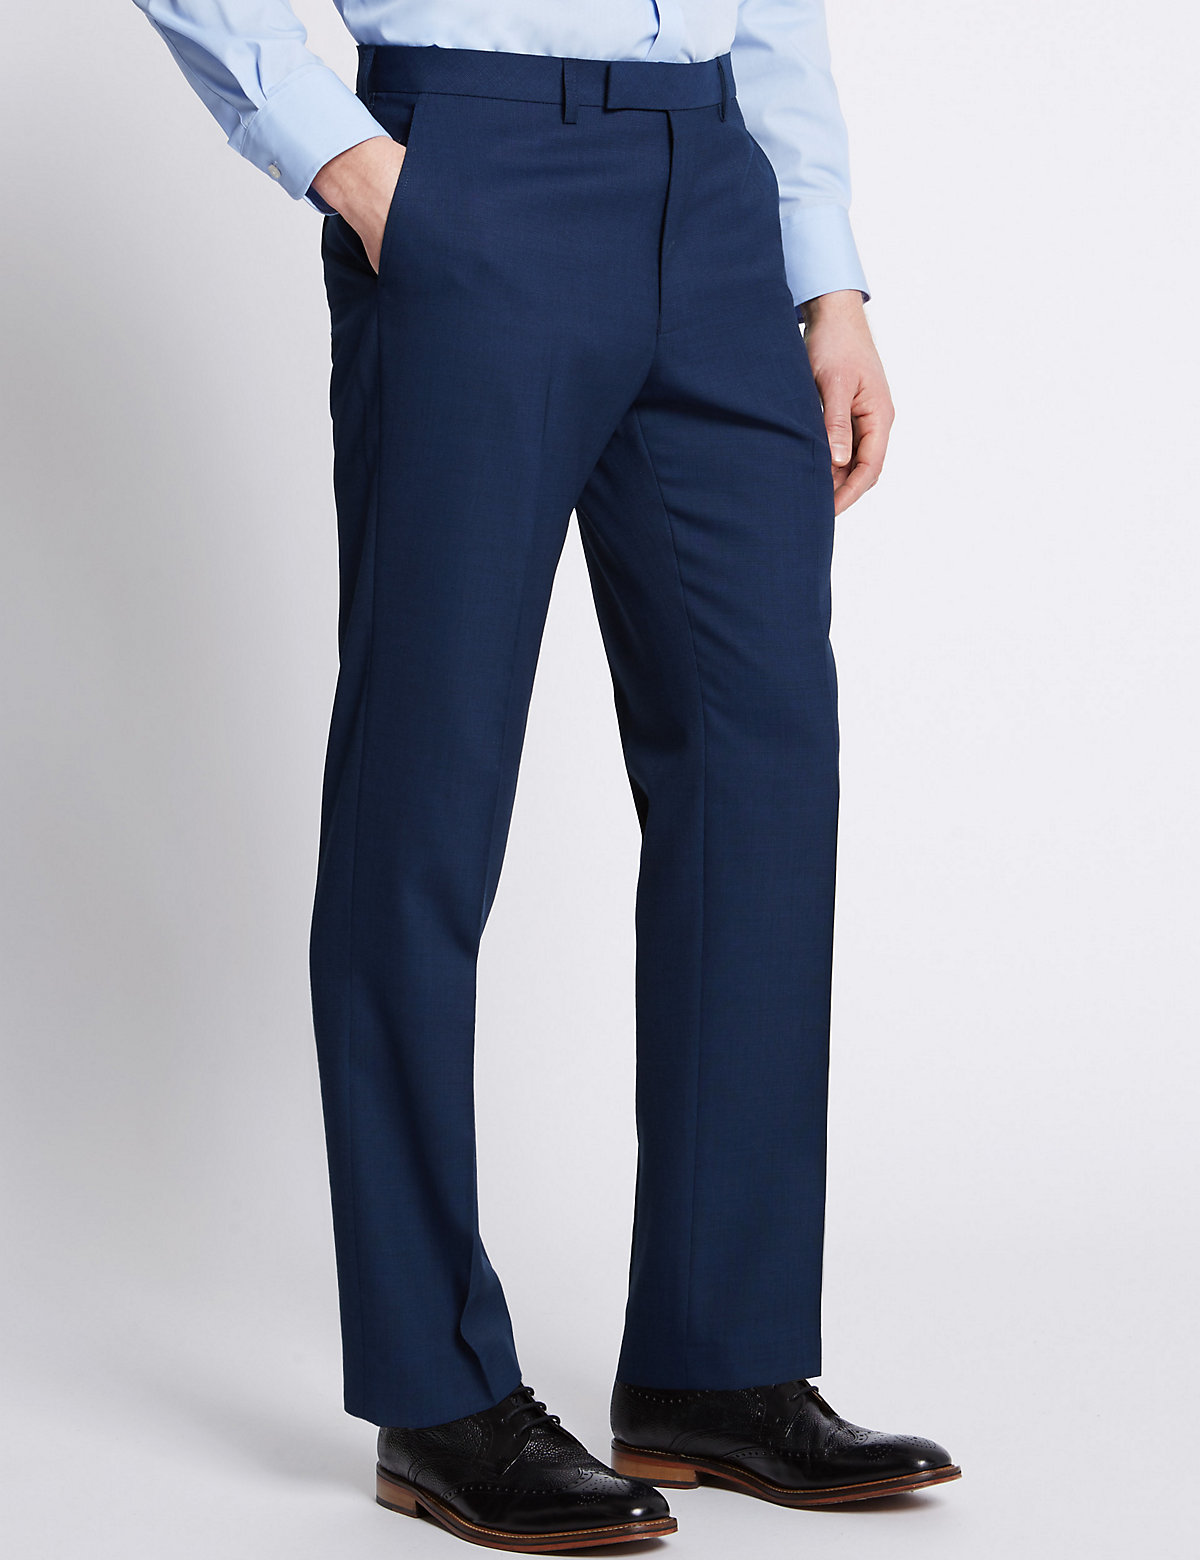 M&S Collection Blue Textured Tailored Fit Trousers